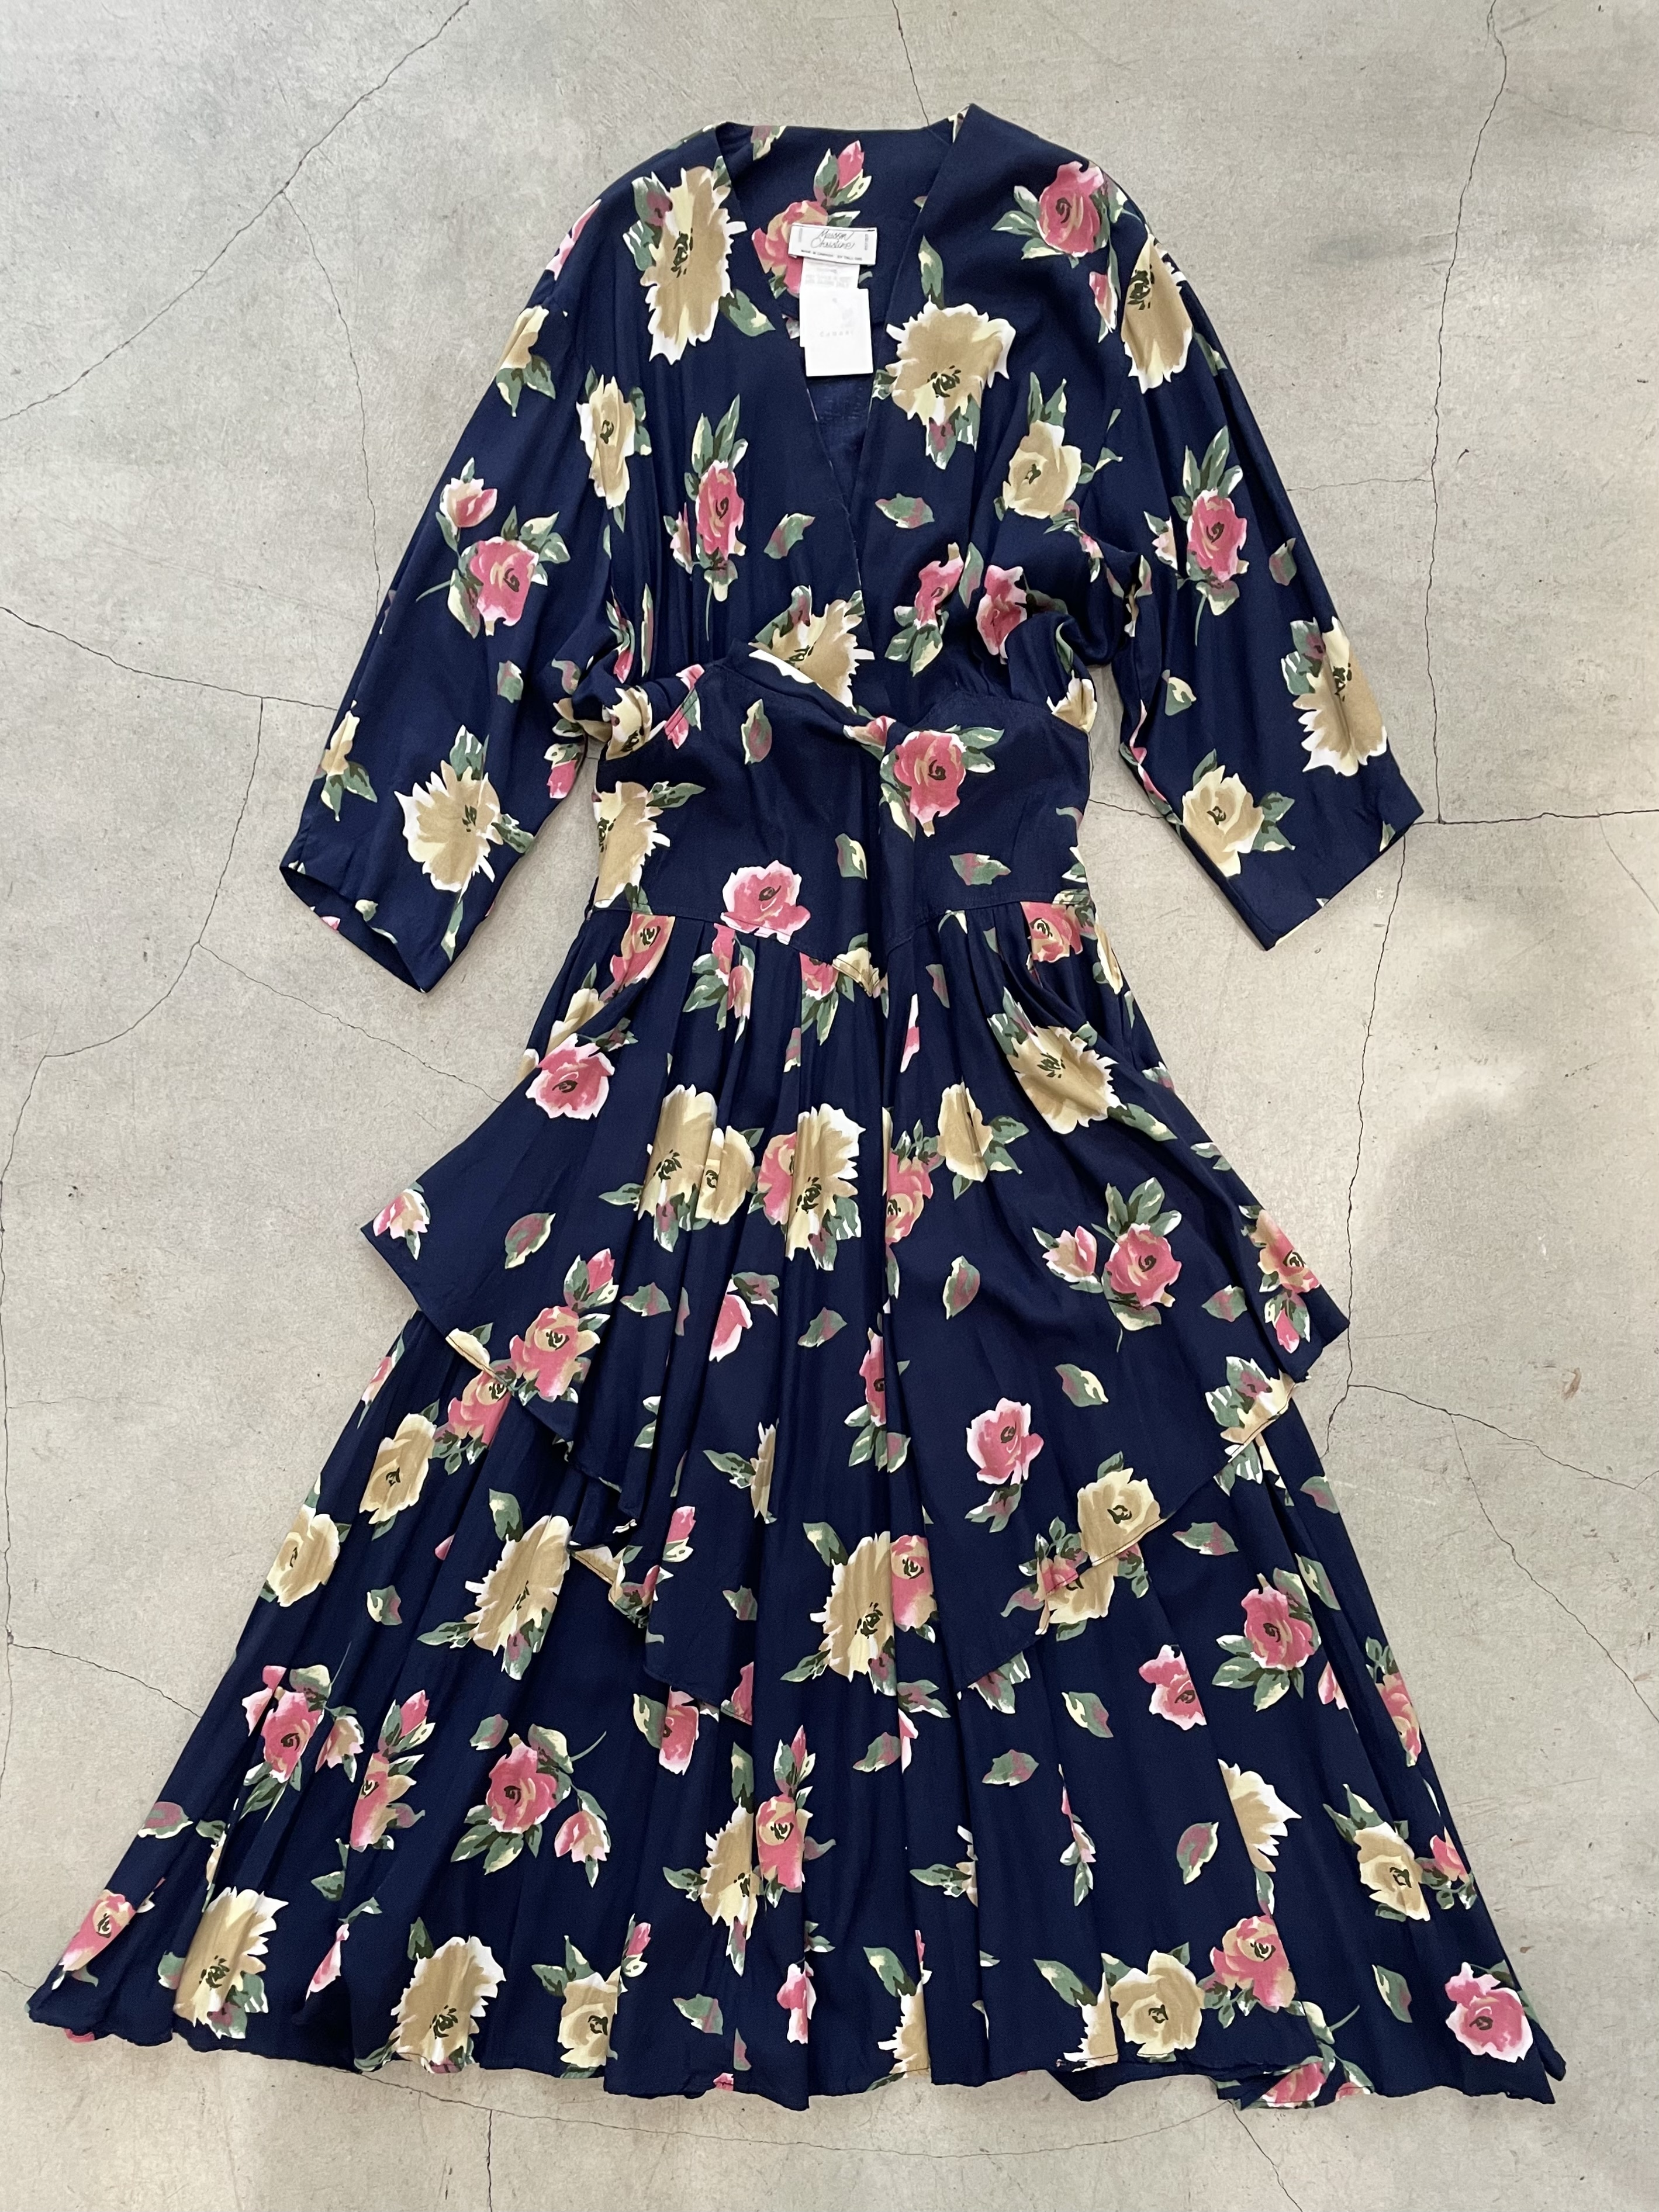 made in canada vintage floral dress